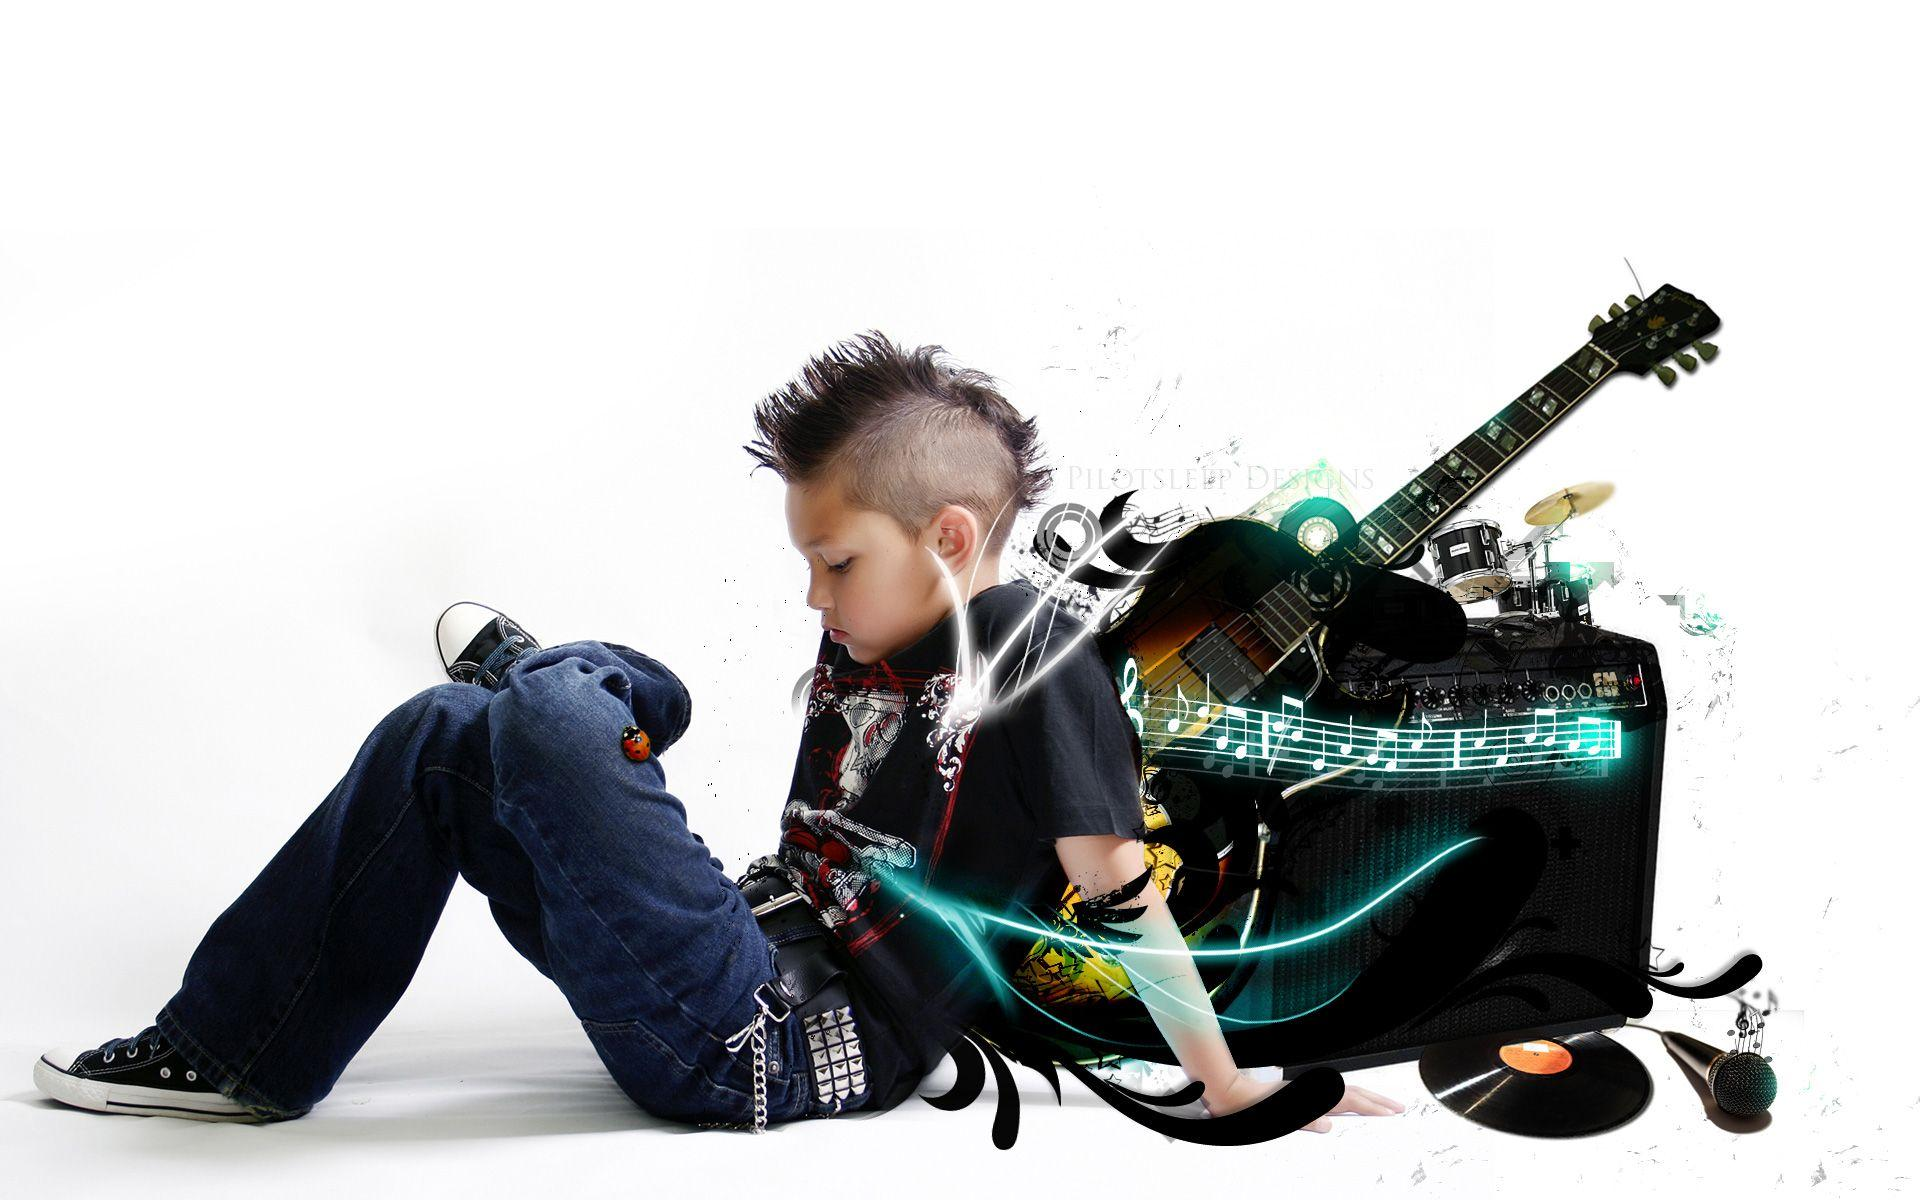 Boy Wallpapers, Full HD 1080p, Best HD Boy Pictures, GuoGuiyan